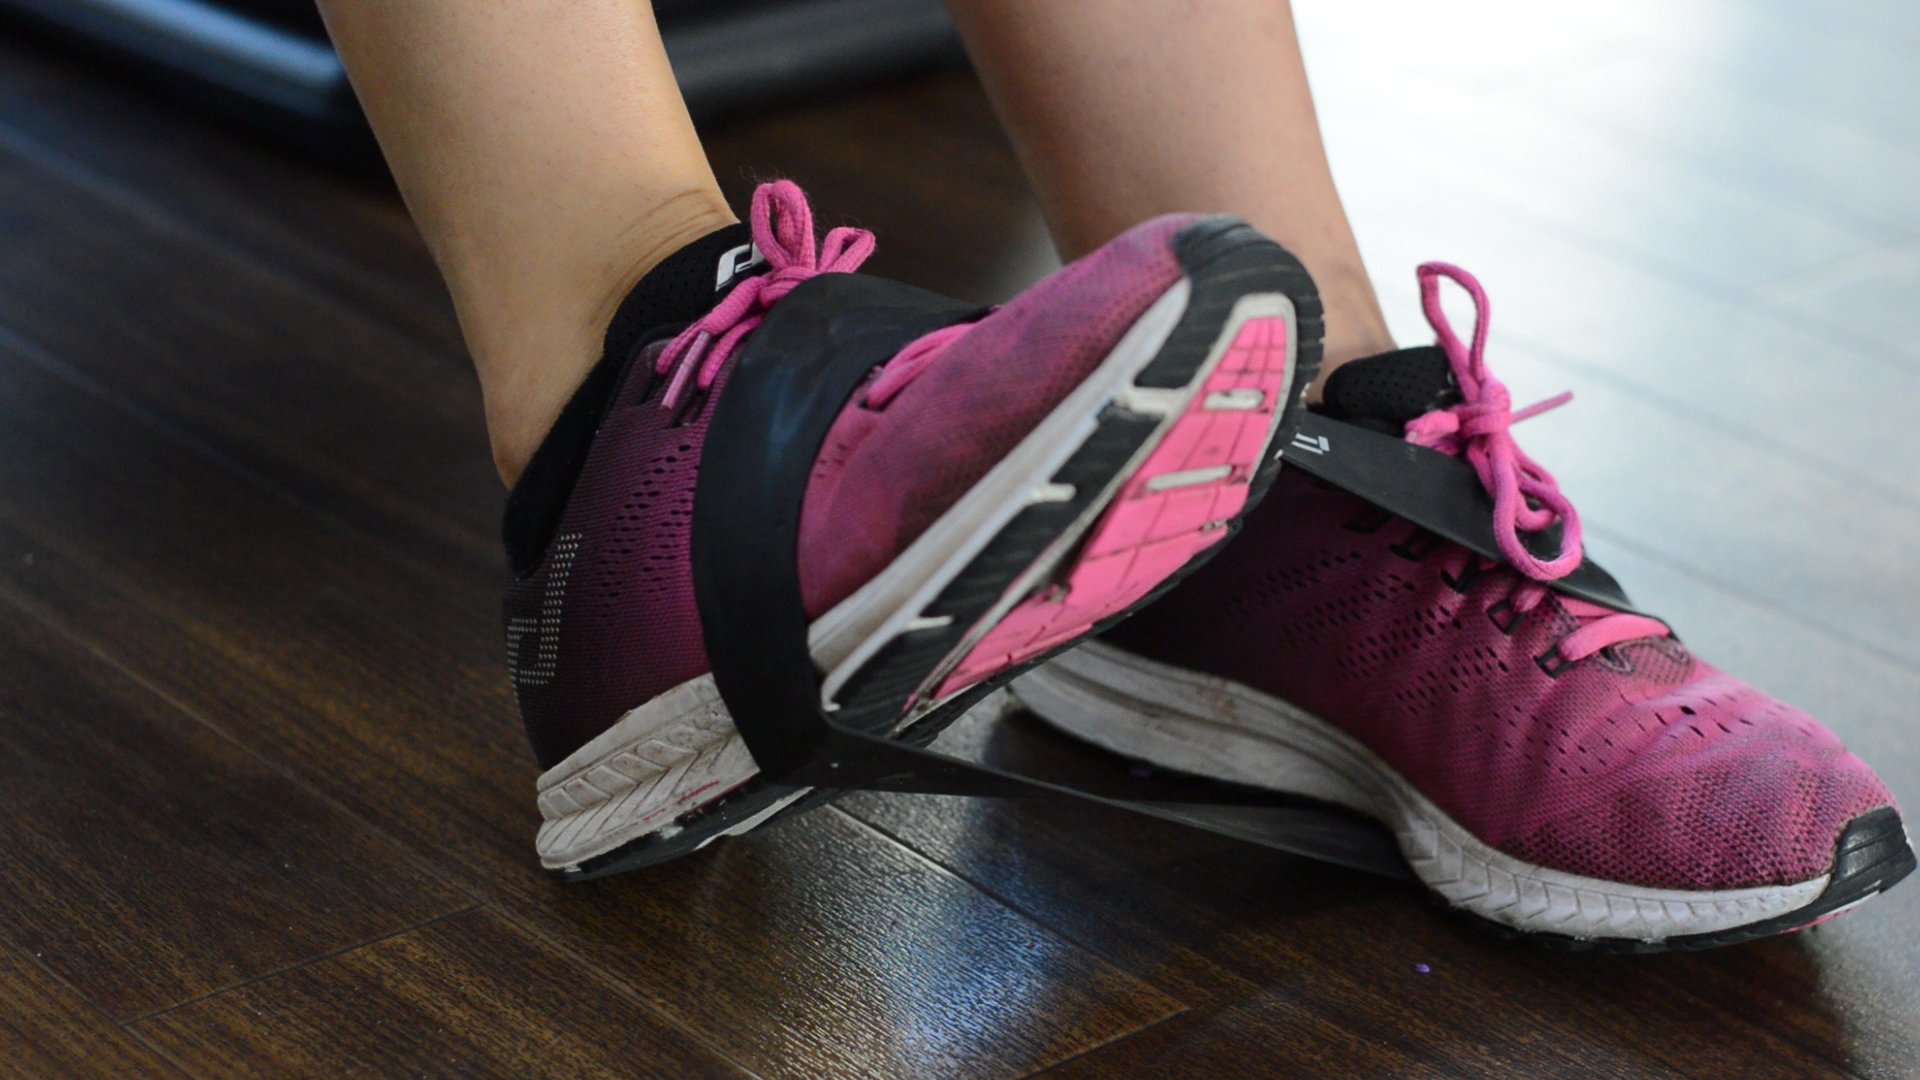 foot lift, ankle dorsflexion, stength exercise